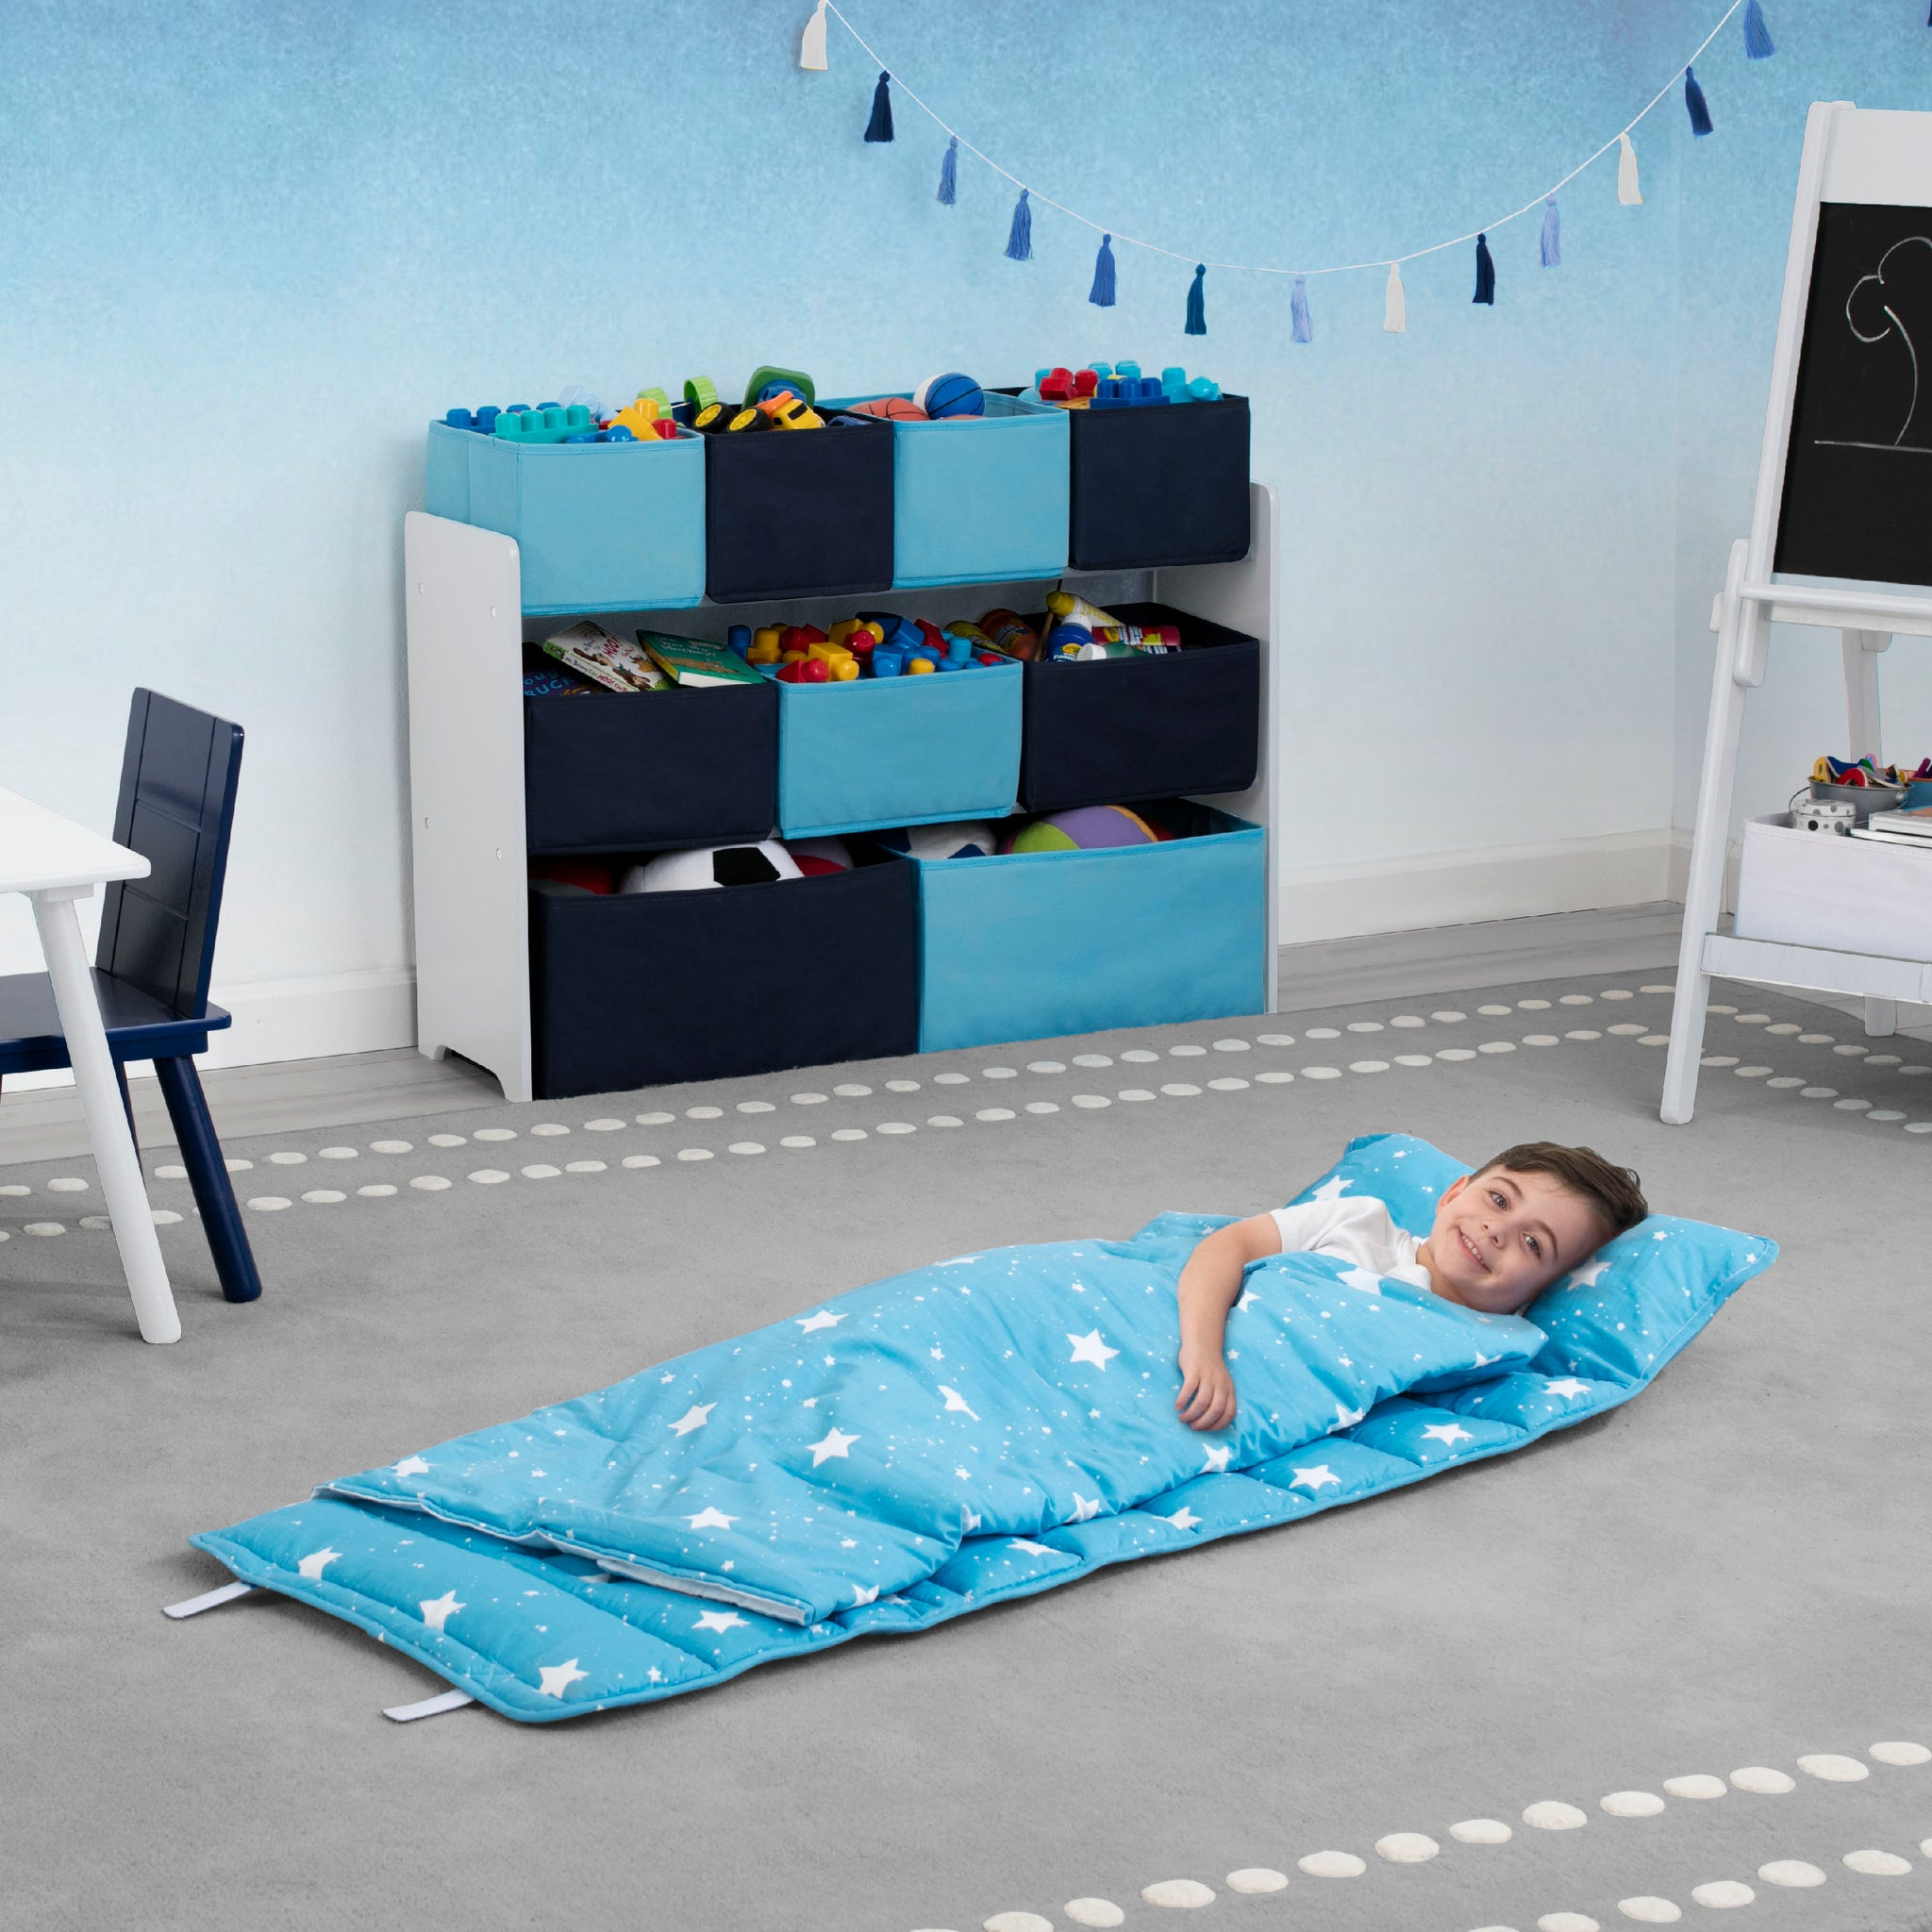 Nap Mat with Included Pillow and Blanket for Toddlers and Kids